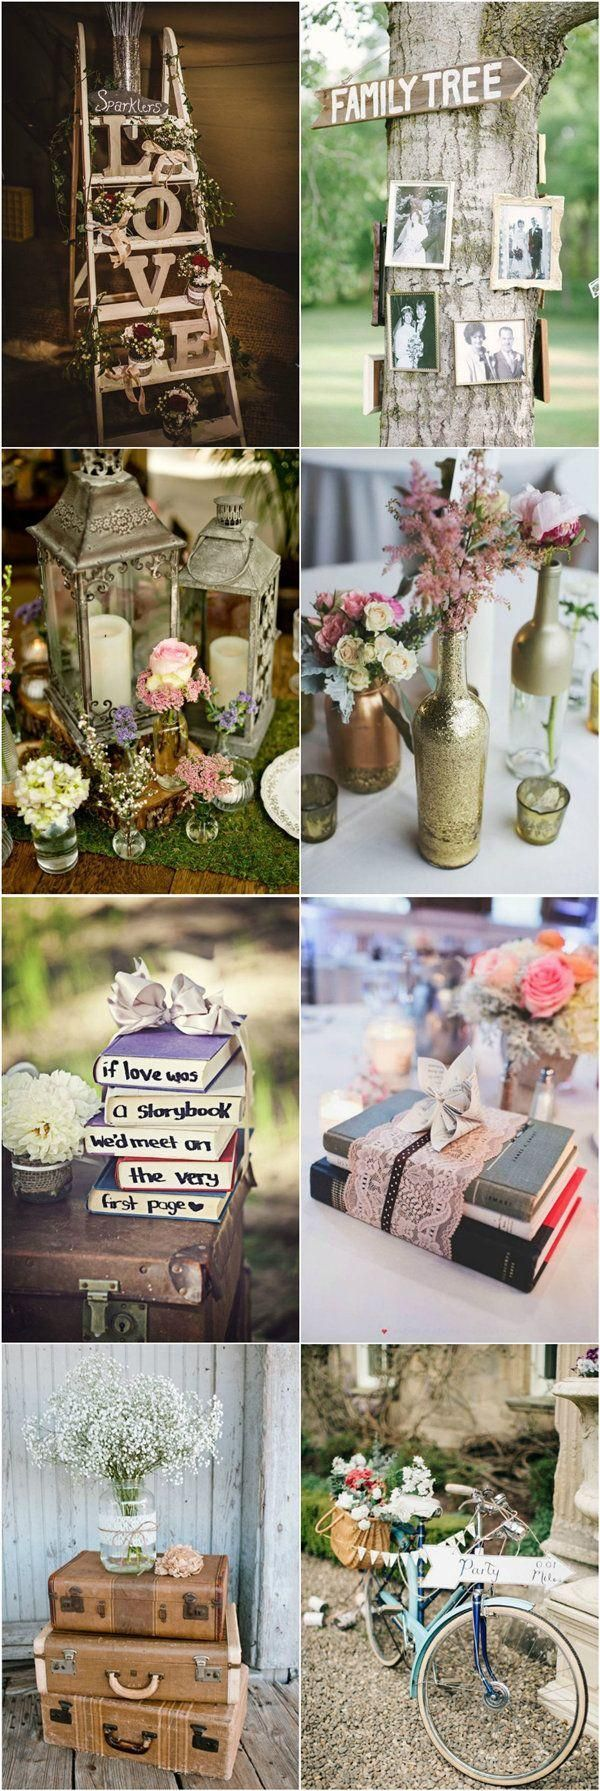 Are You Looking Forward To Having A Vintage Wedding A Vintage